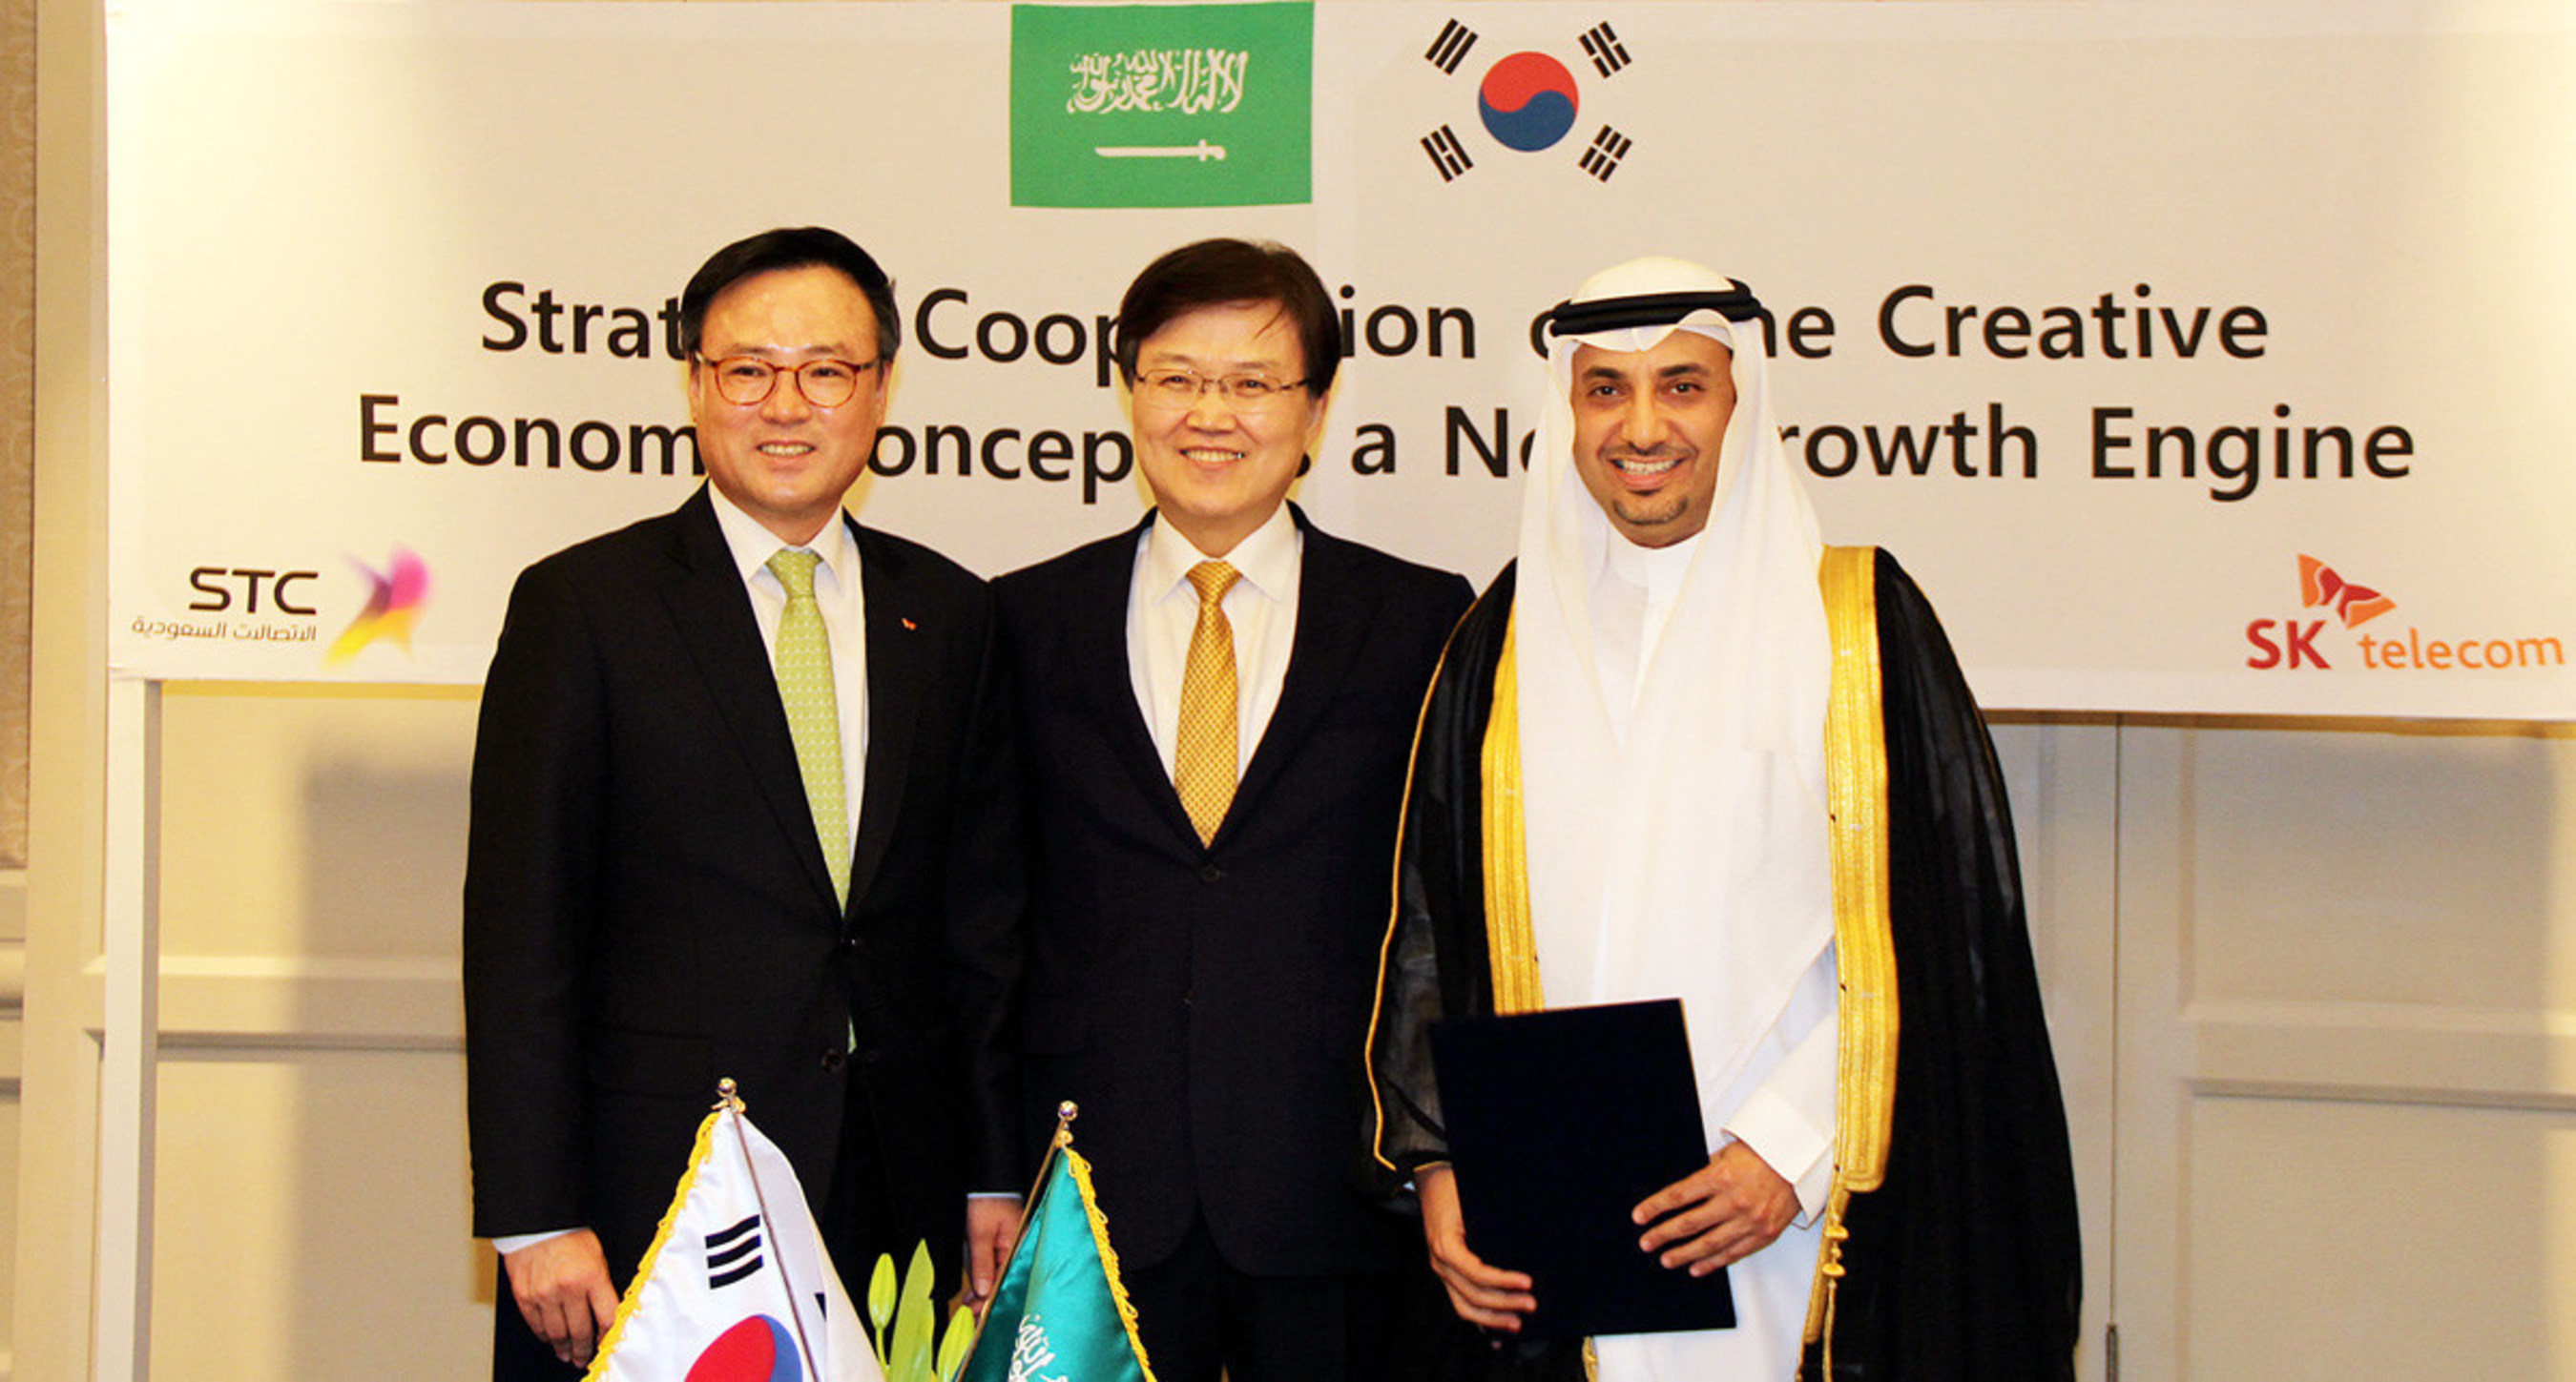 SK Telecom - Saudi Telecom Company Sign MOU for Strategic Cooperation on the Creative Economy Concept as a New Growth Engine